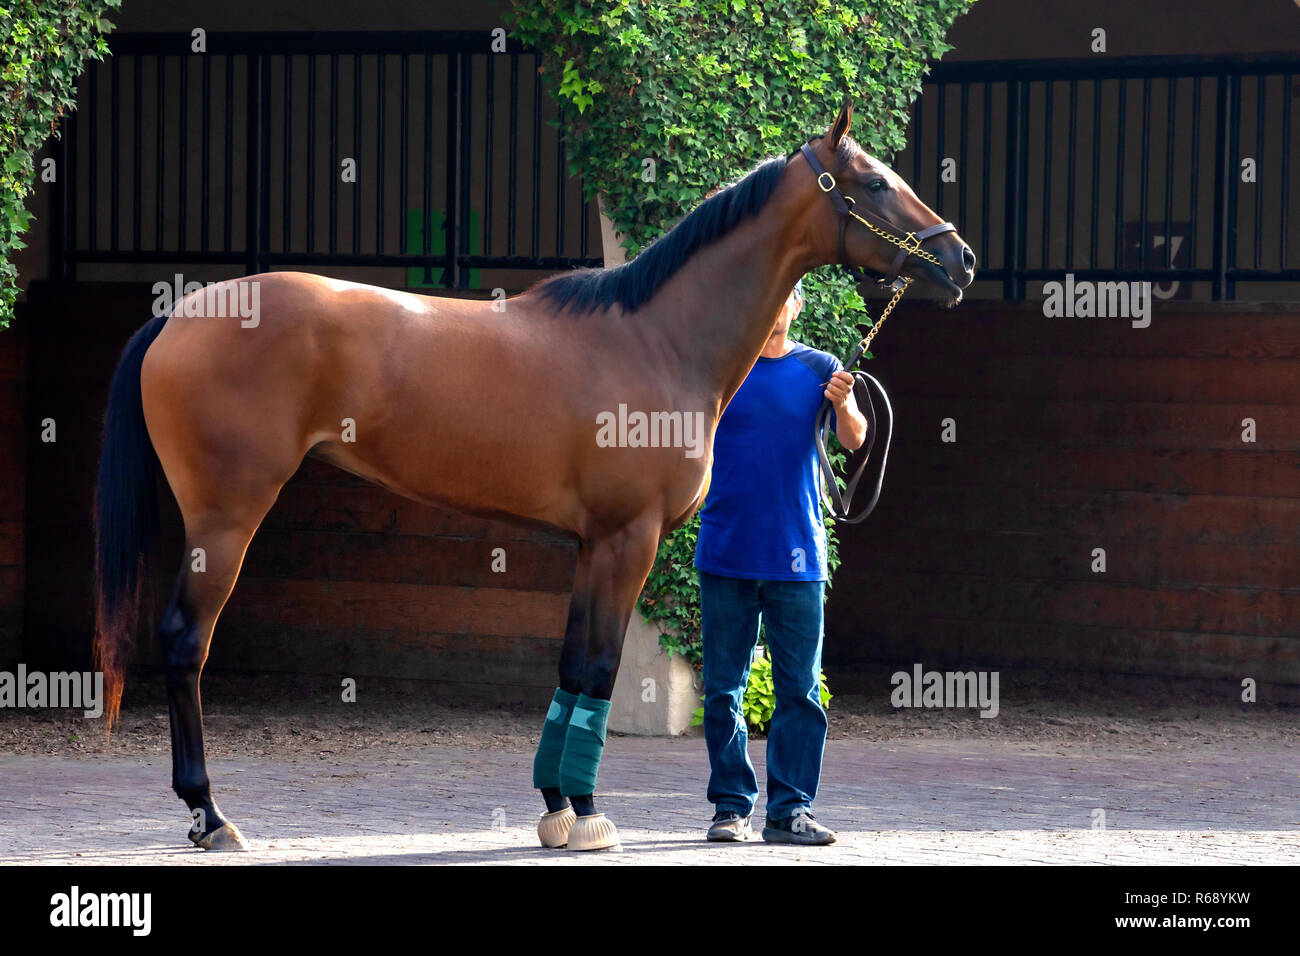 A race horse with male attendant in Del Mar, California - Stock Image